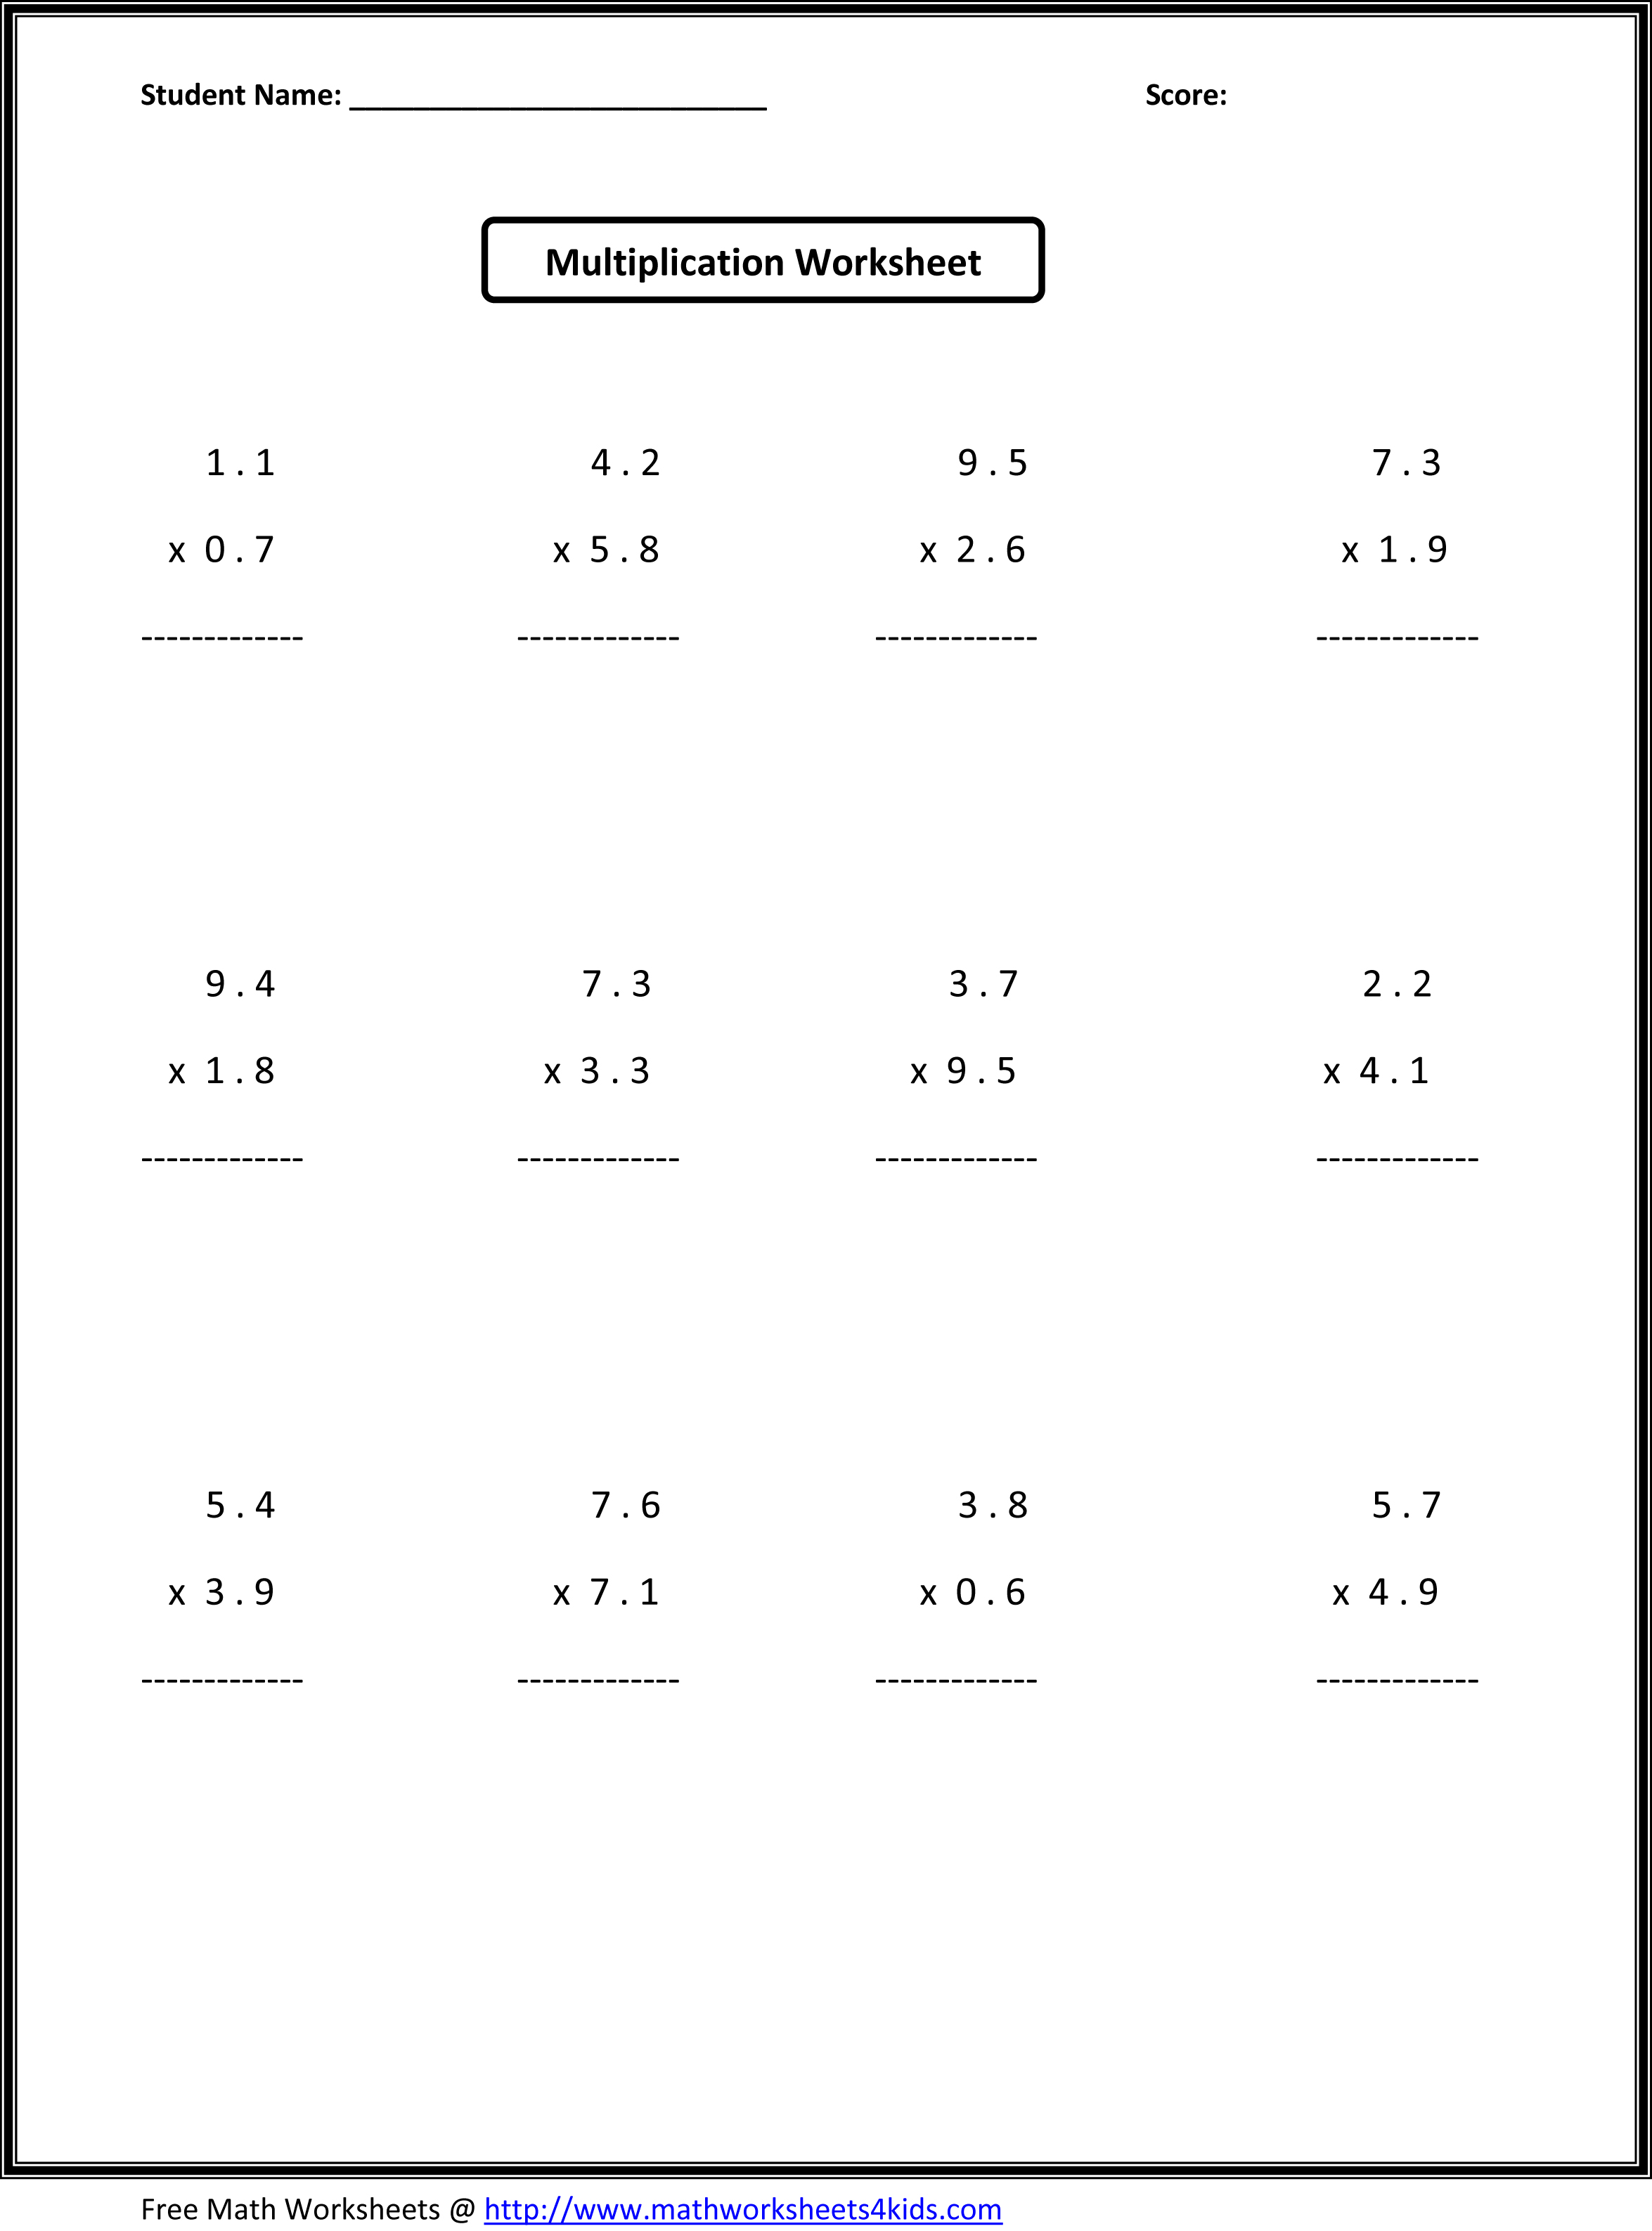 Worksheets Math Worksheet 6th Grade math problems for 6th graders worksheets free library grade sixth free